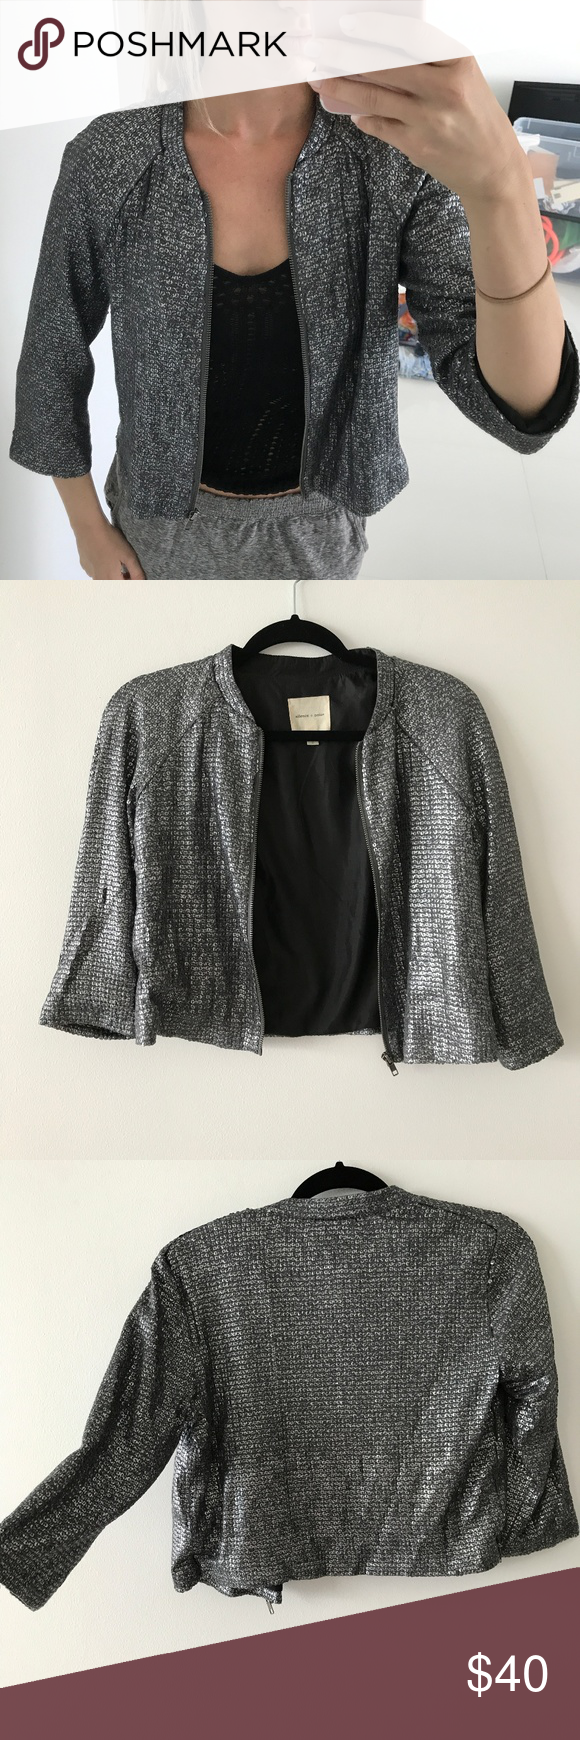 Silver Sequin Cardigan Like New Condition | Sequin cardigan ...